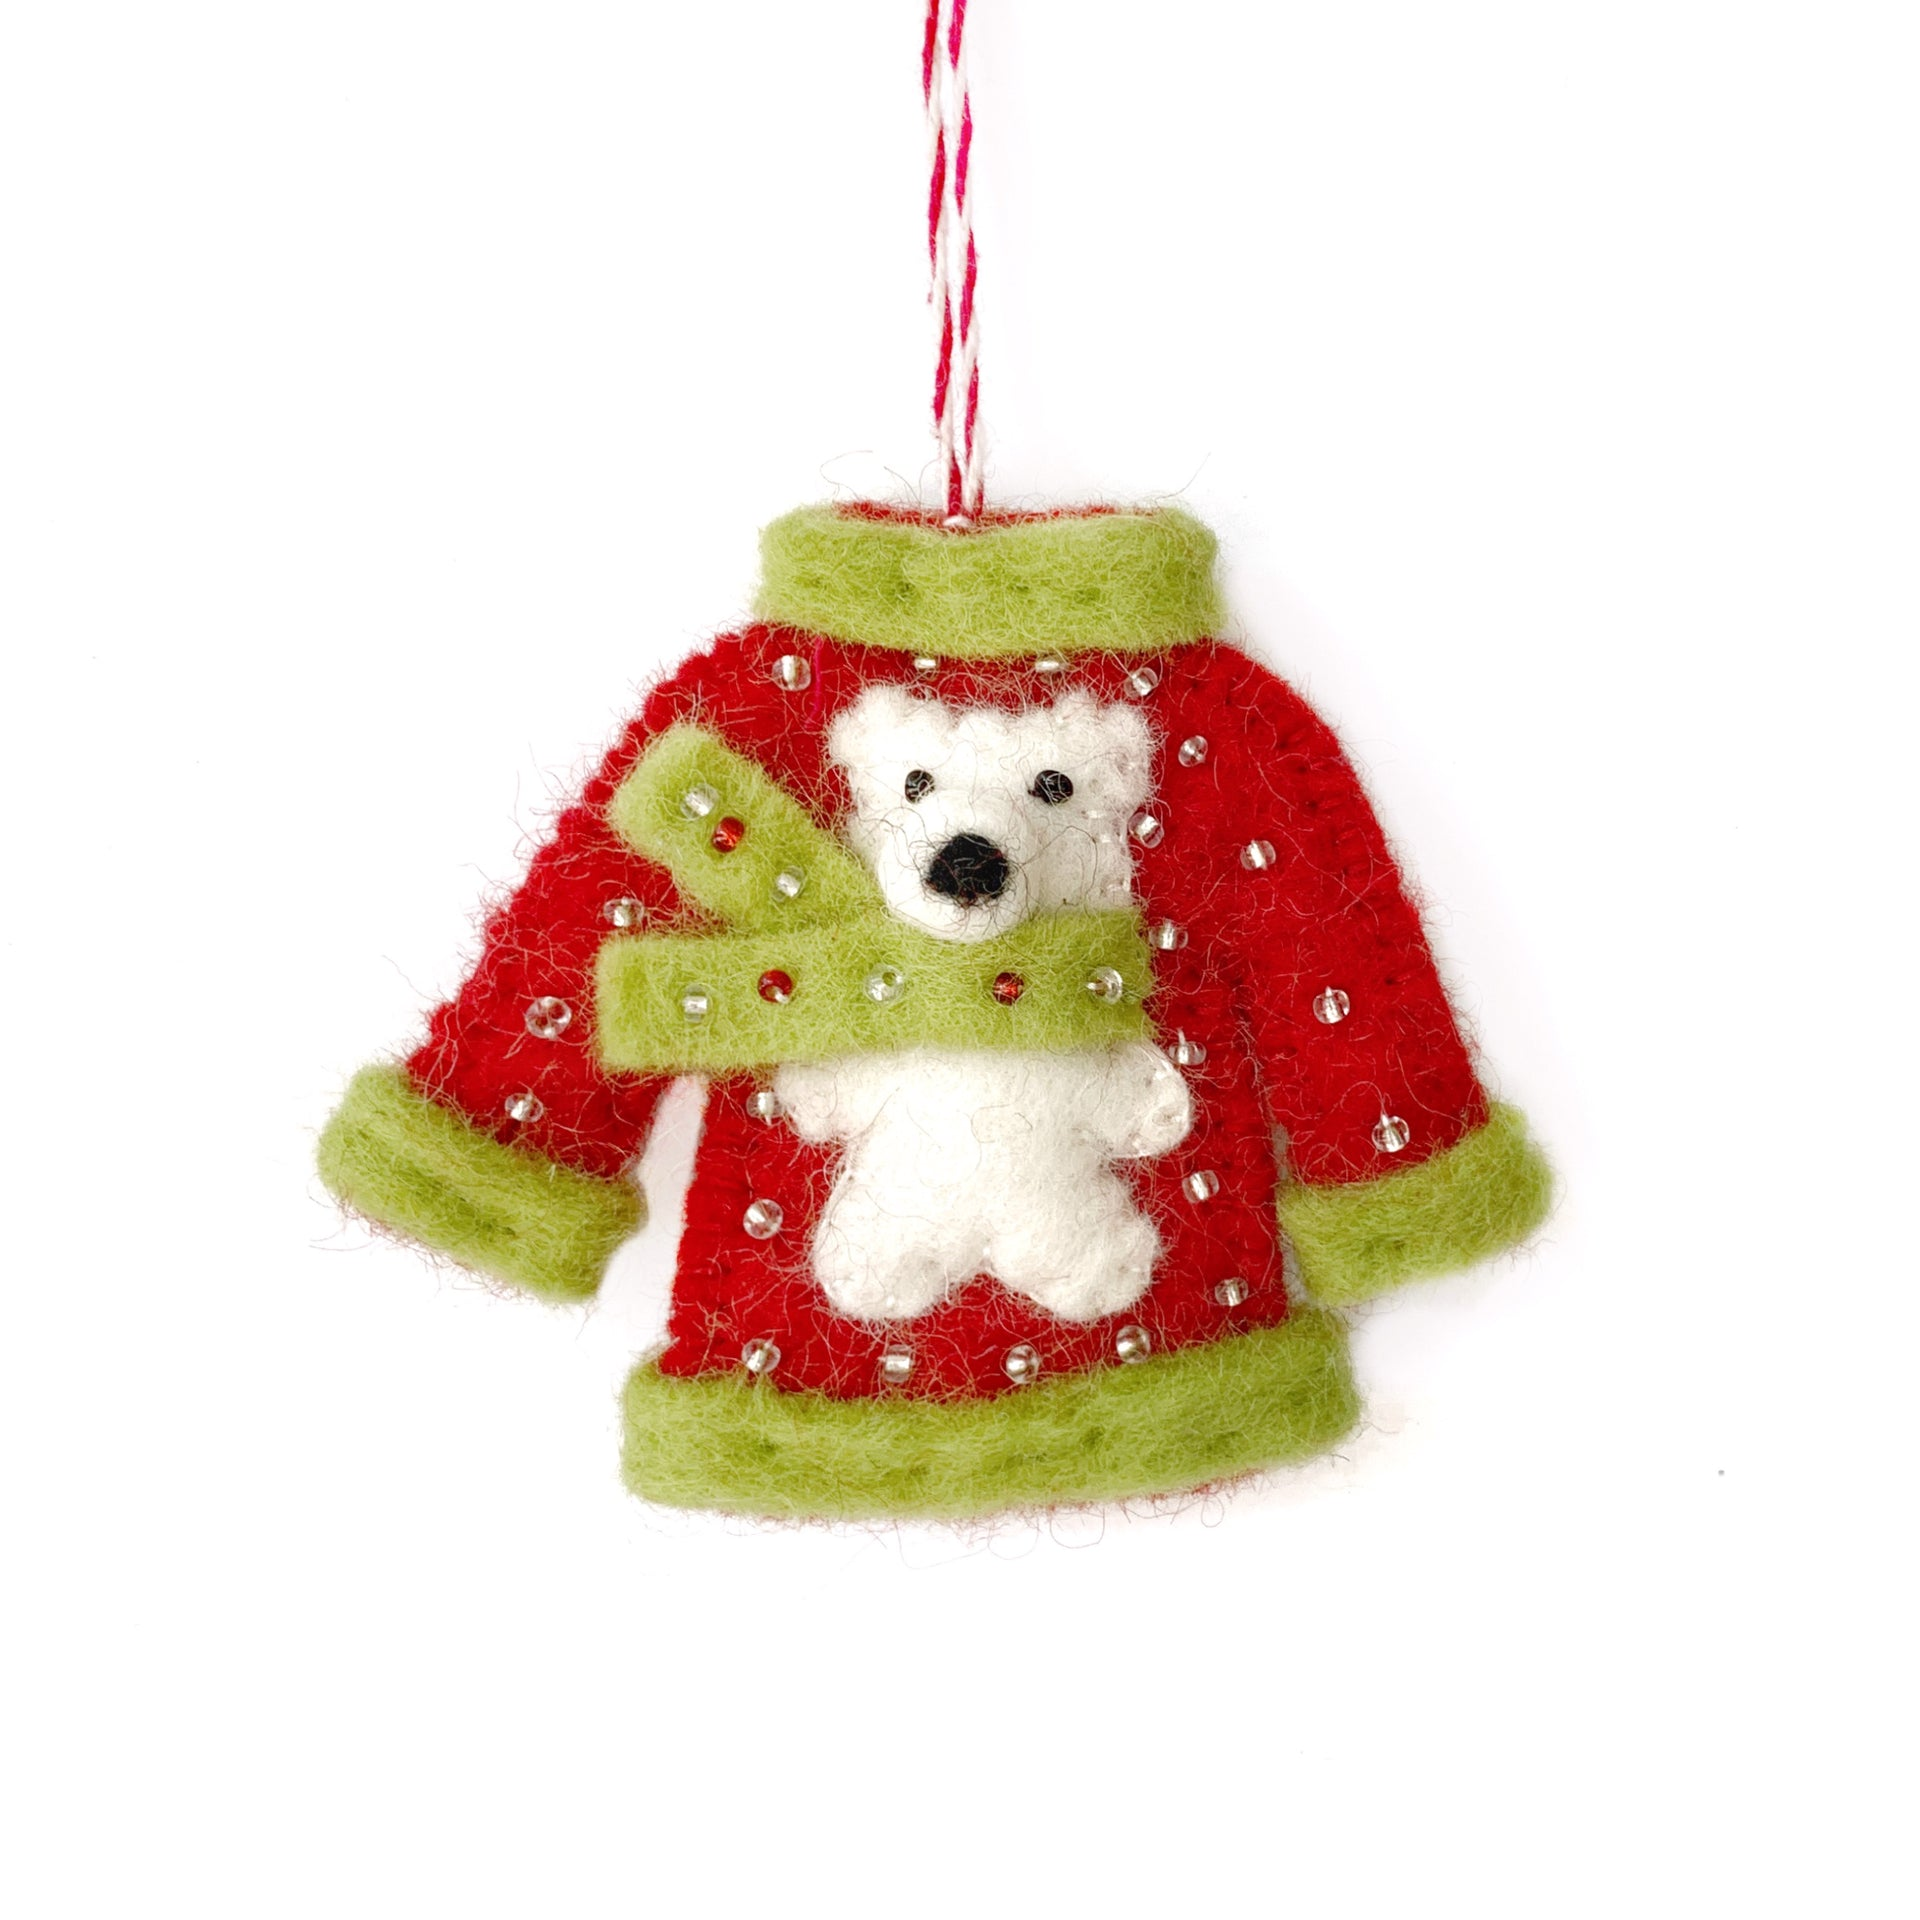 Ugly Christmas Sweater Ornament, Felt Wool